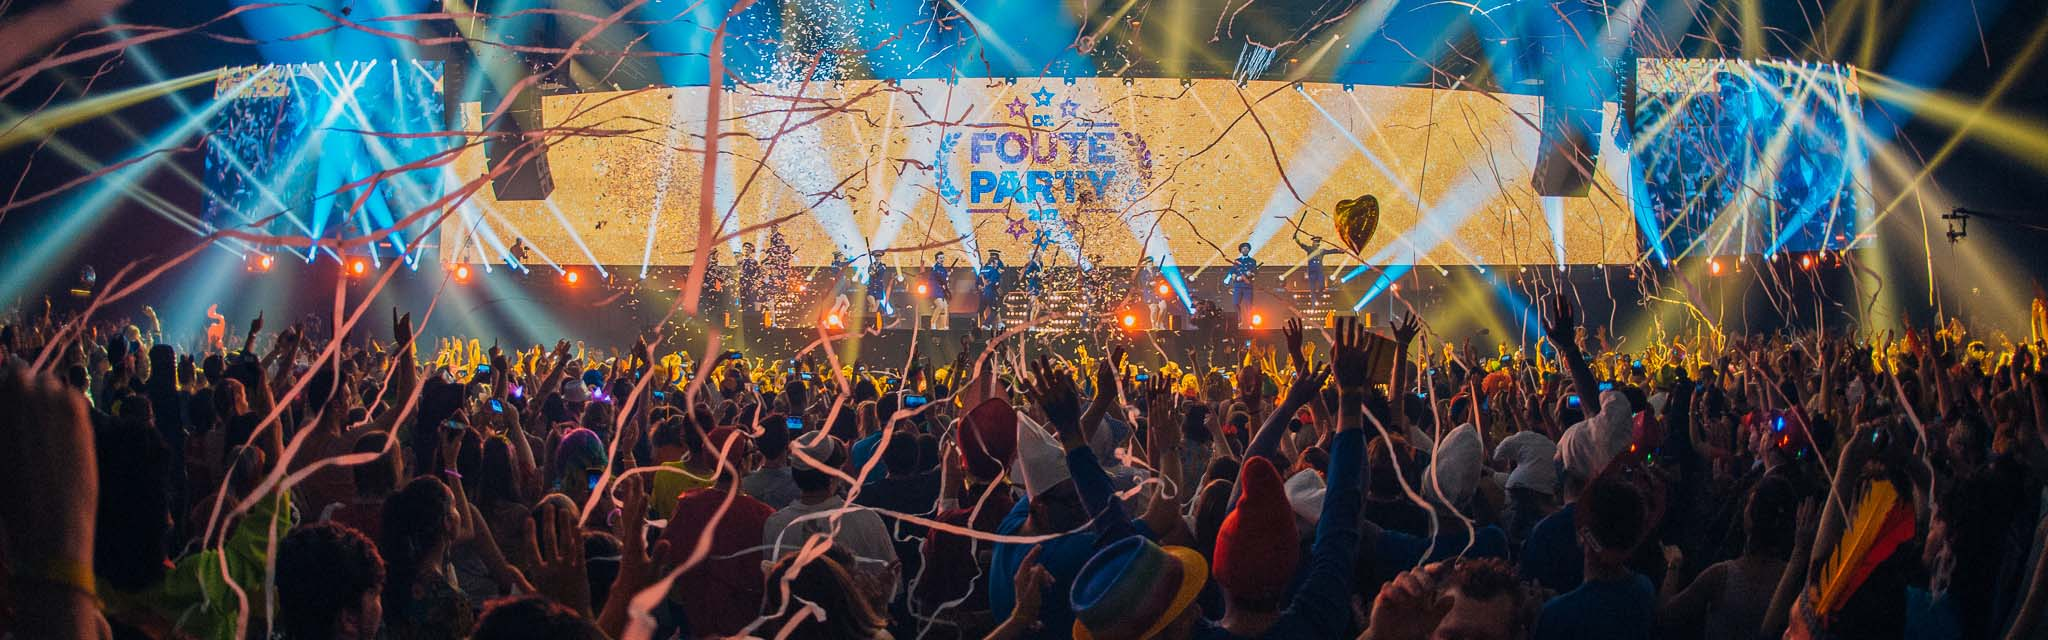 Fouteheader foute party 2017 jelle dreesen photo 220416 2